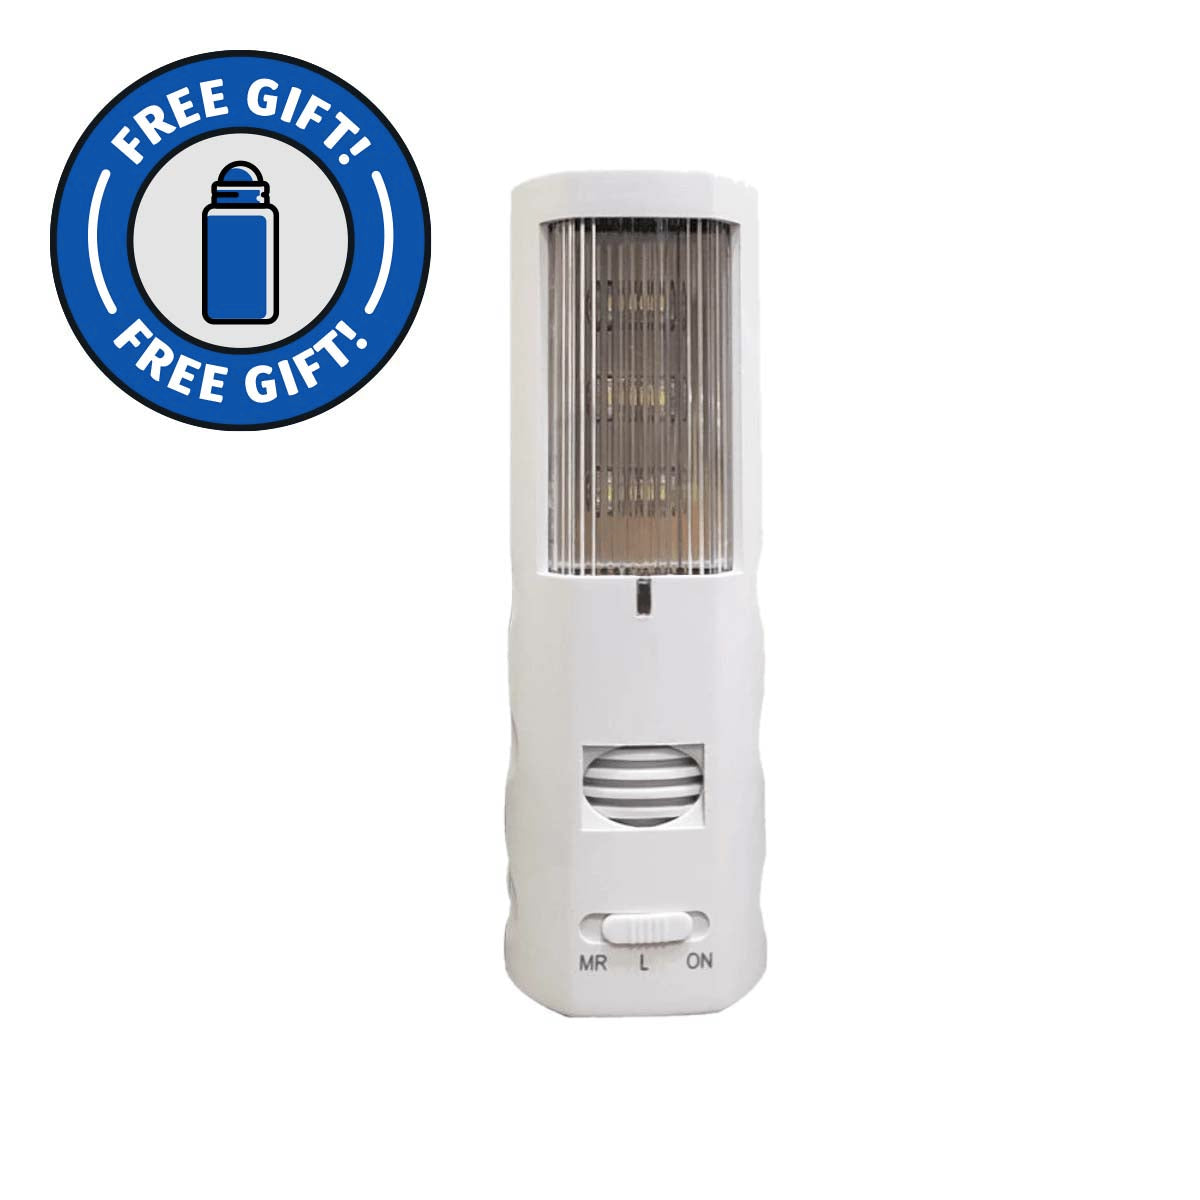 Soundteoh 2 In 1 Mosquito Repeller With LED Night Light 1611